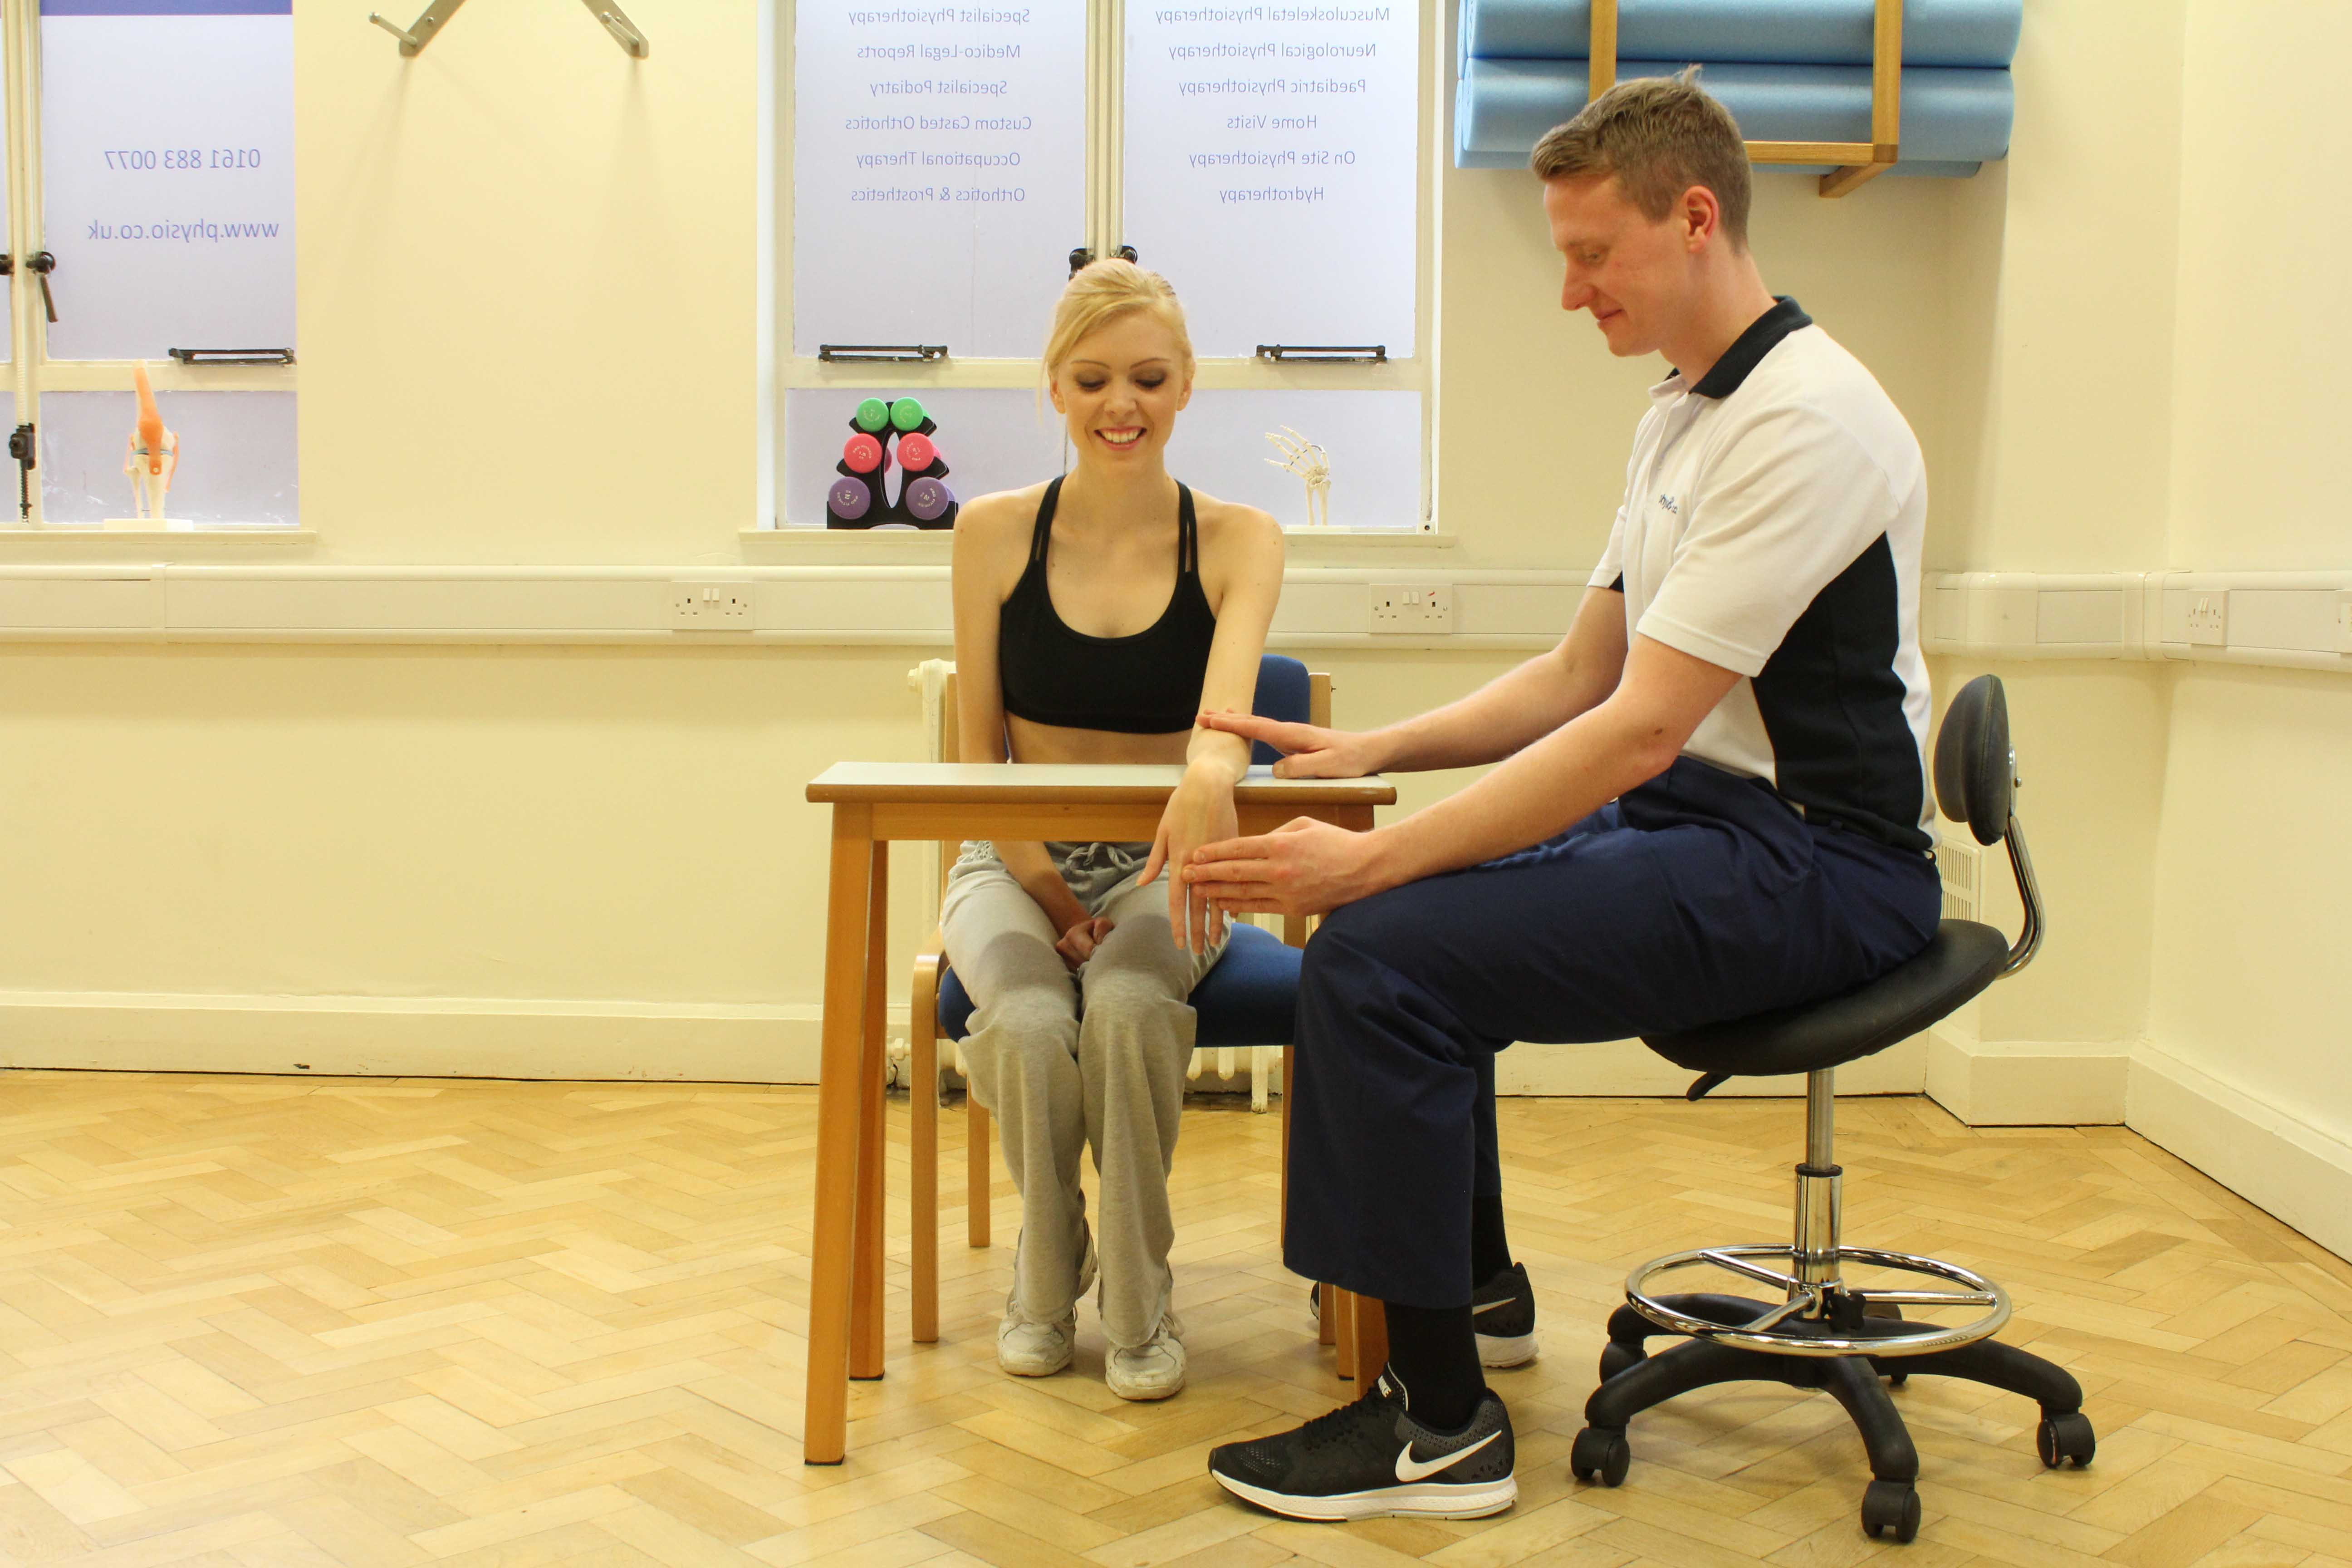 Our physiotherpaist assesing his patient for signs positive signs of carpal tunnel.